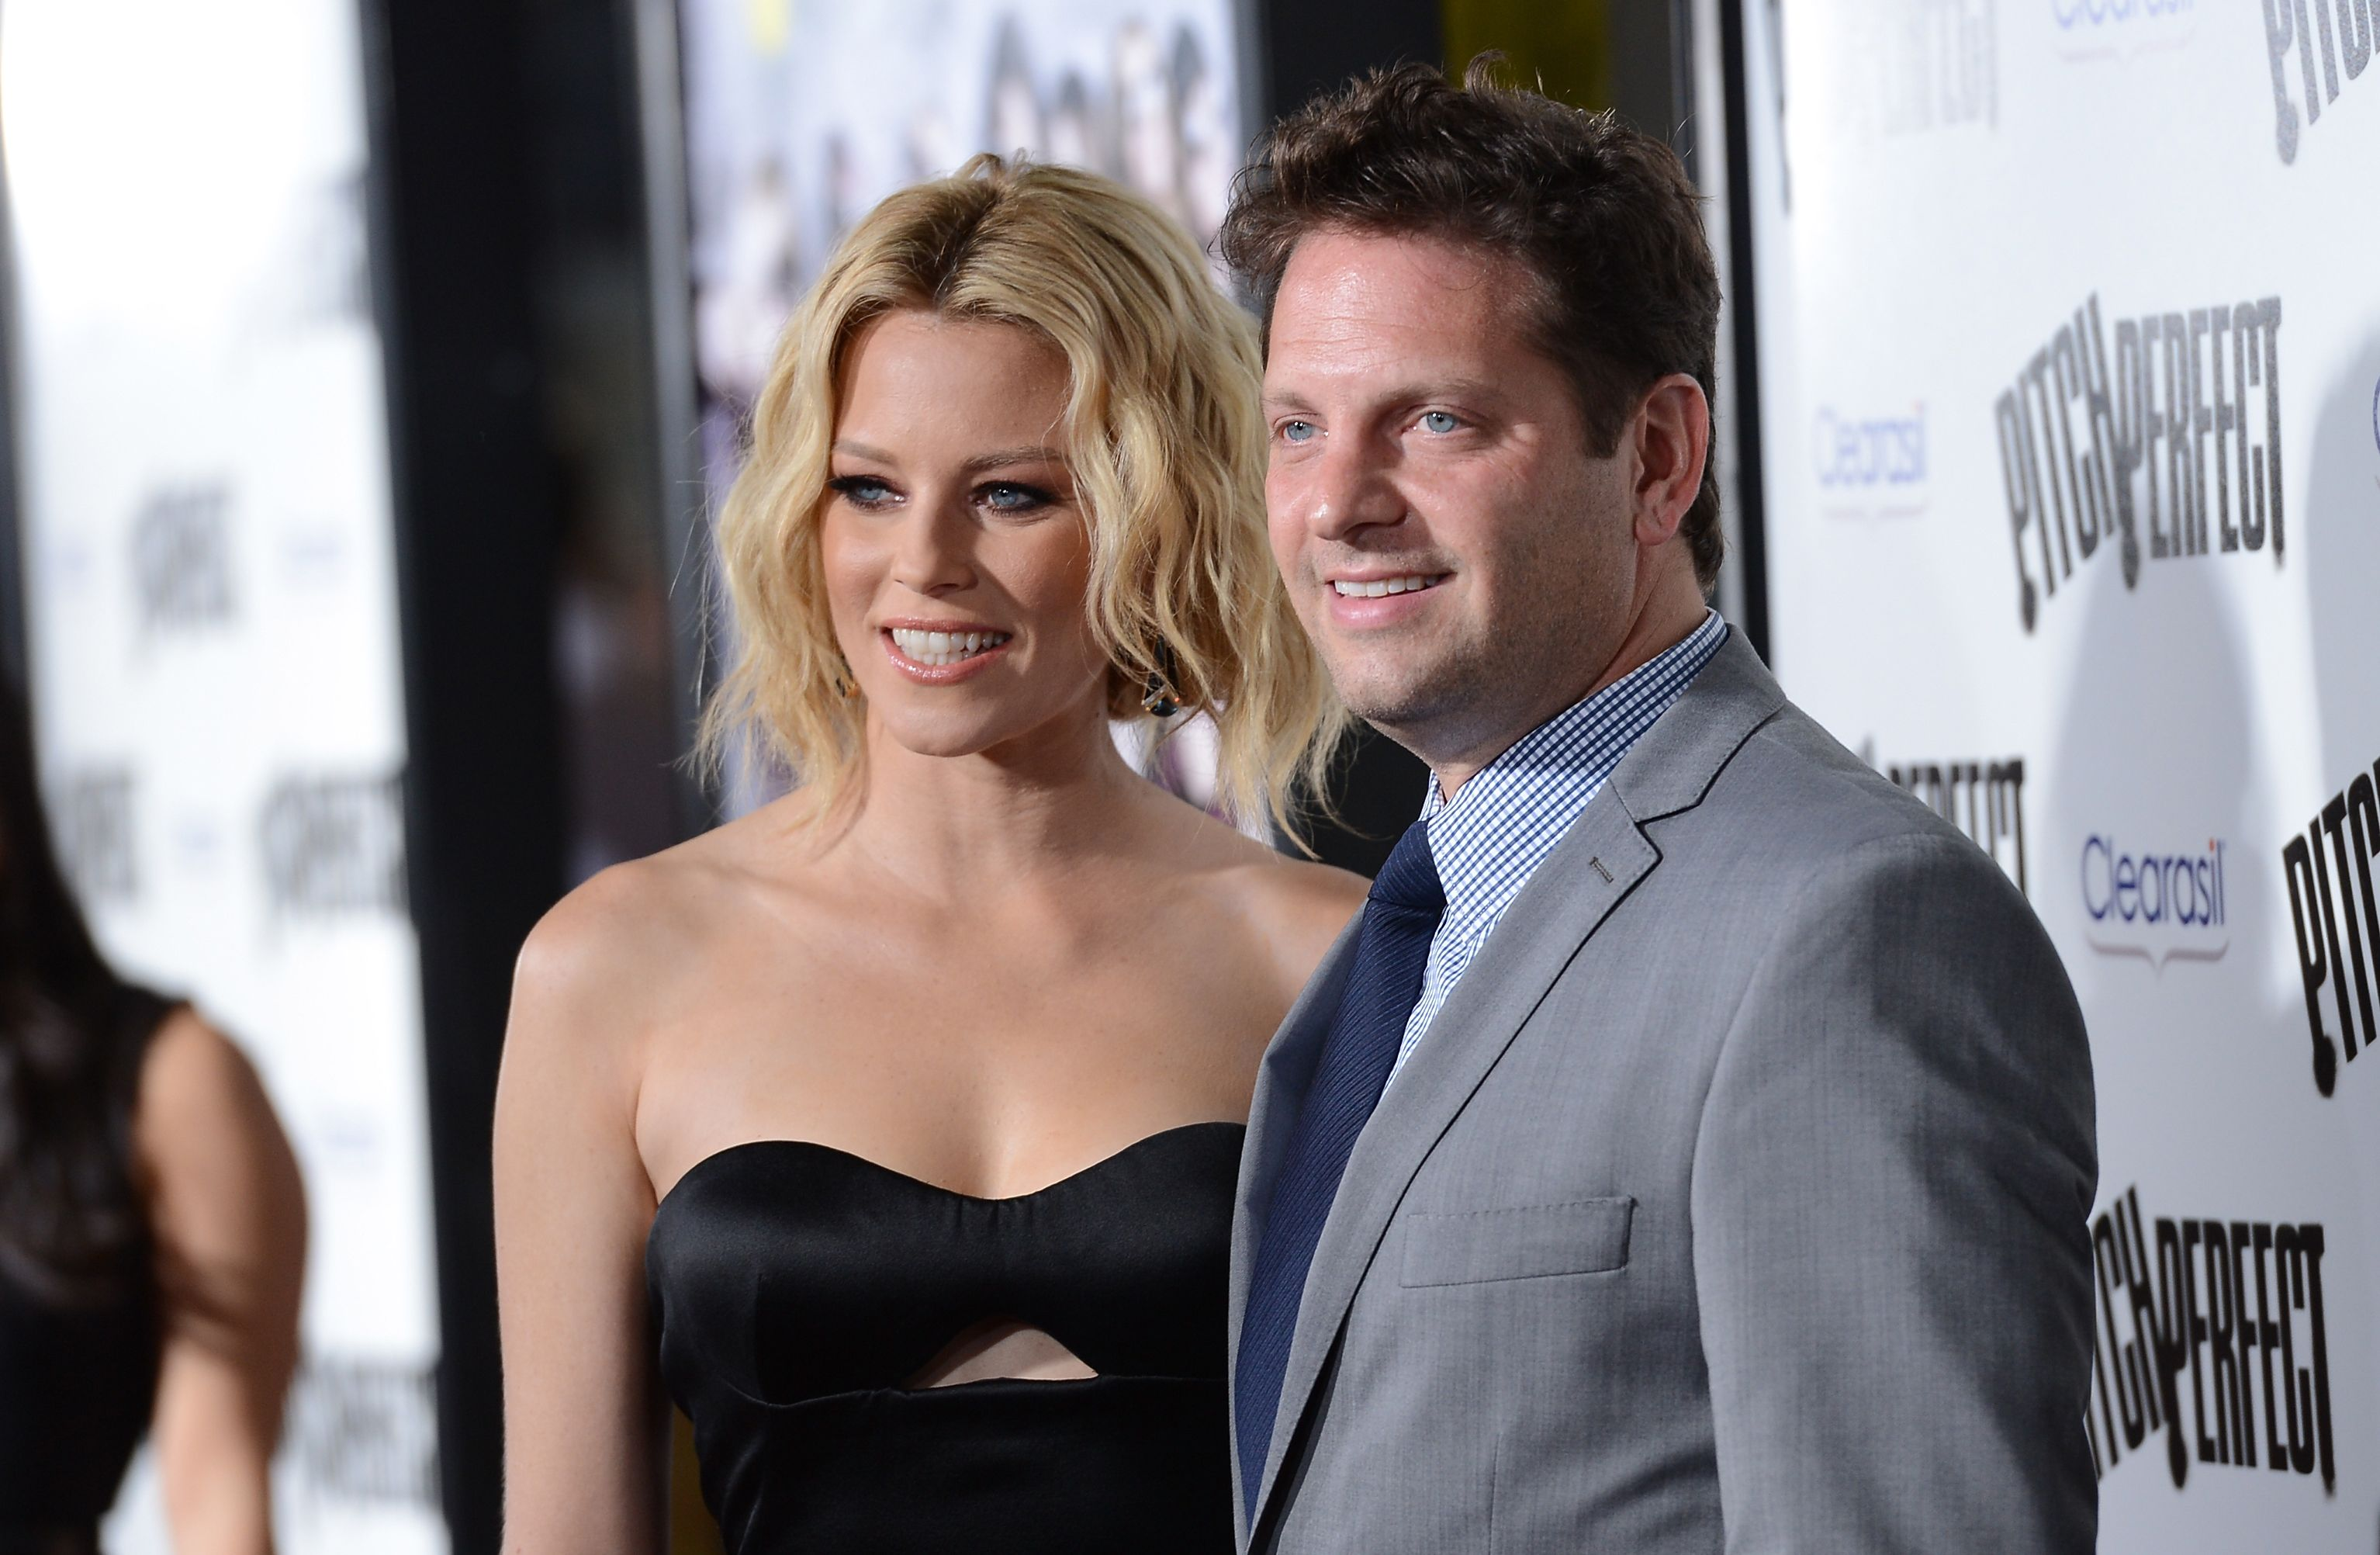 """Elizabeth Banks and Max Handelman at the premiere of """"Pitch Perfect"""" in 2012 in Hollywood, California 